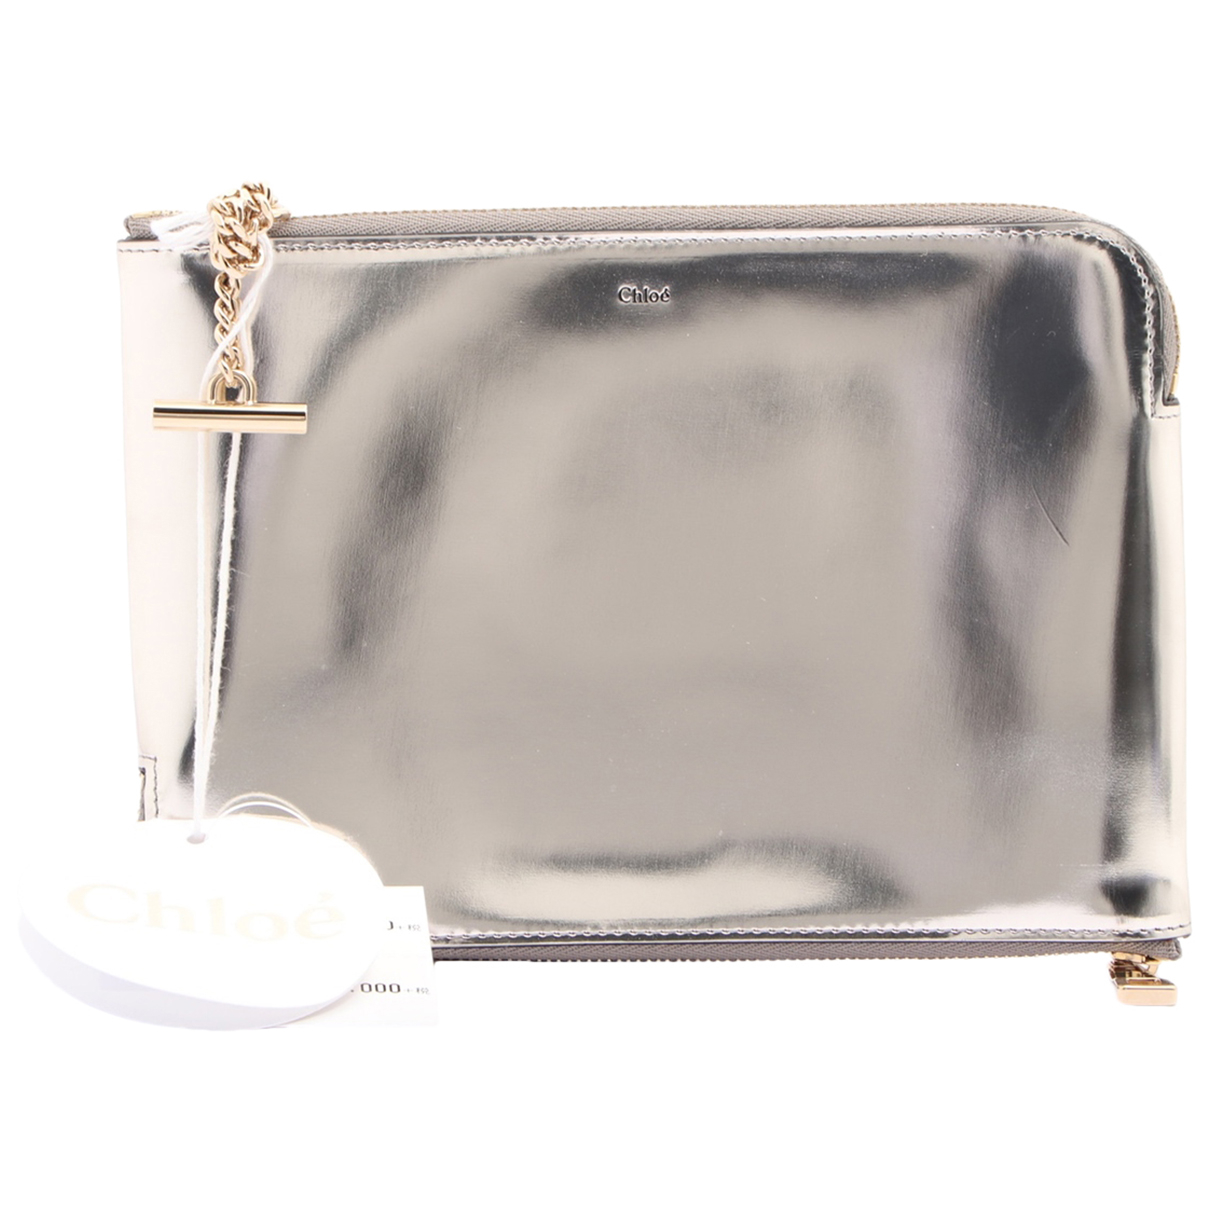 Chloé N Silver Leather Purses, wallet & cases for Women N